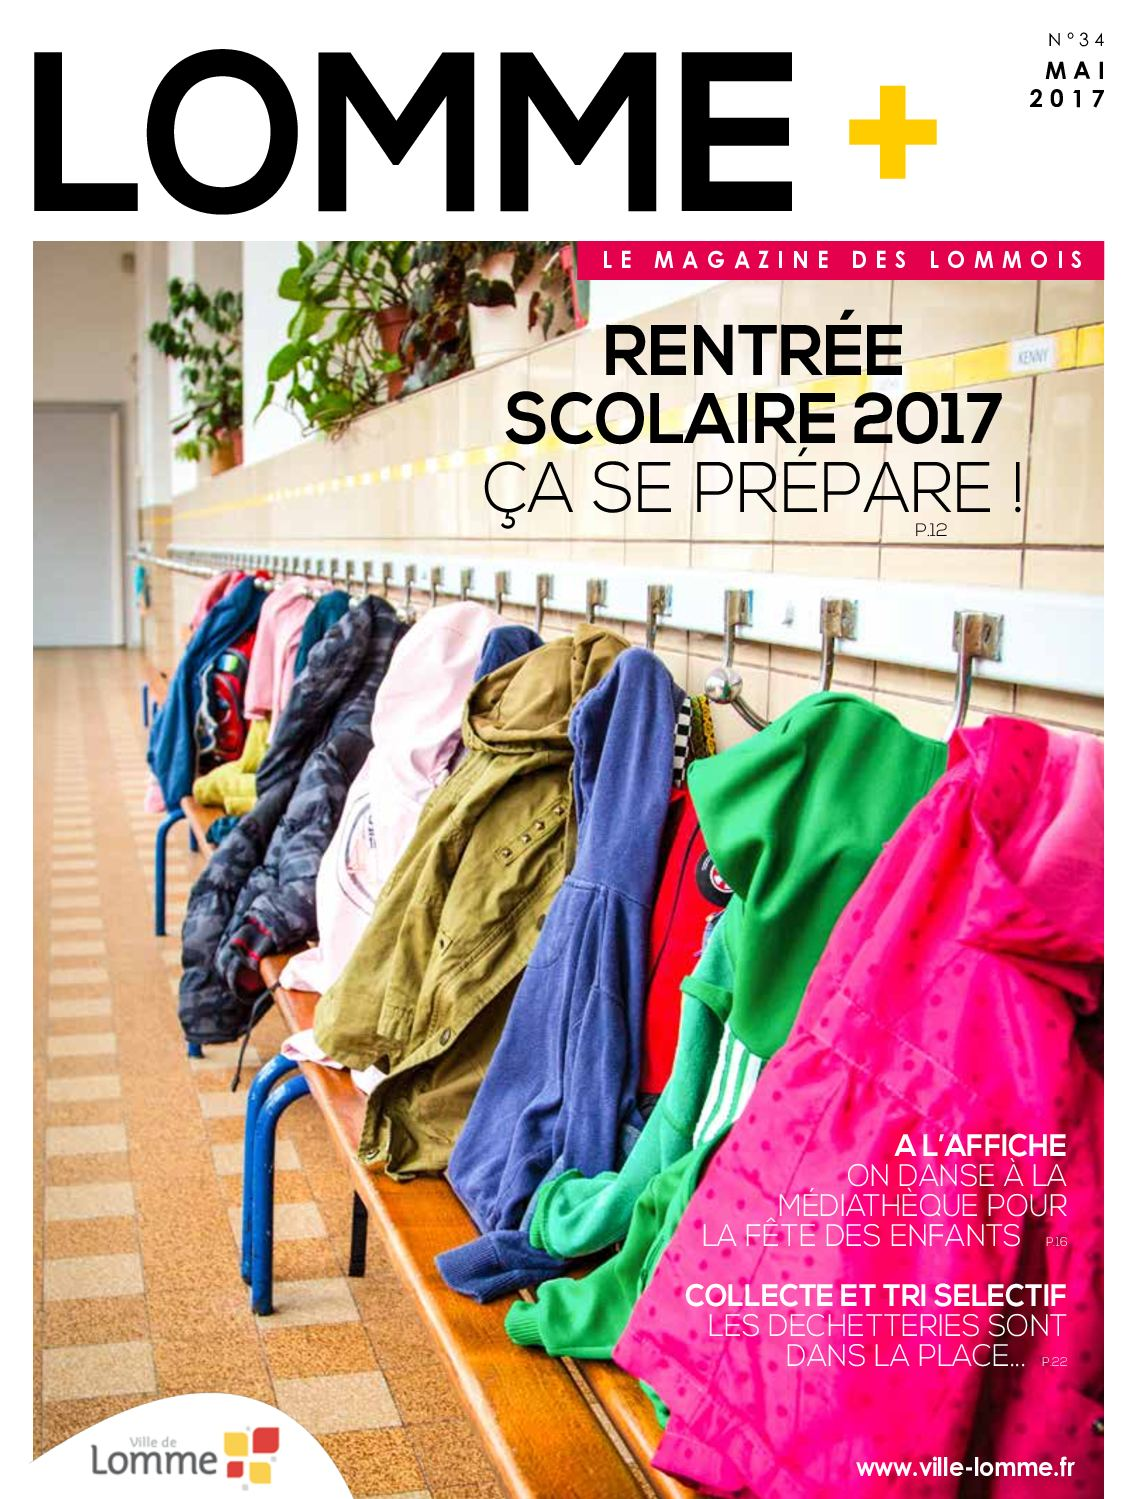 Lomme + Mai 2017